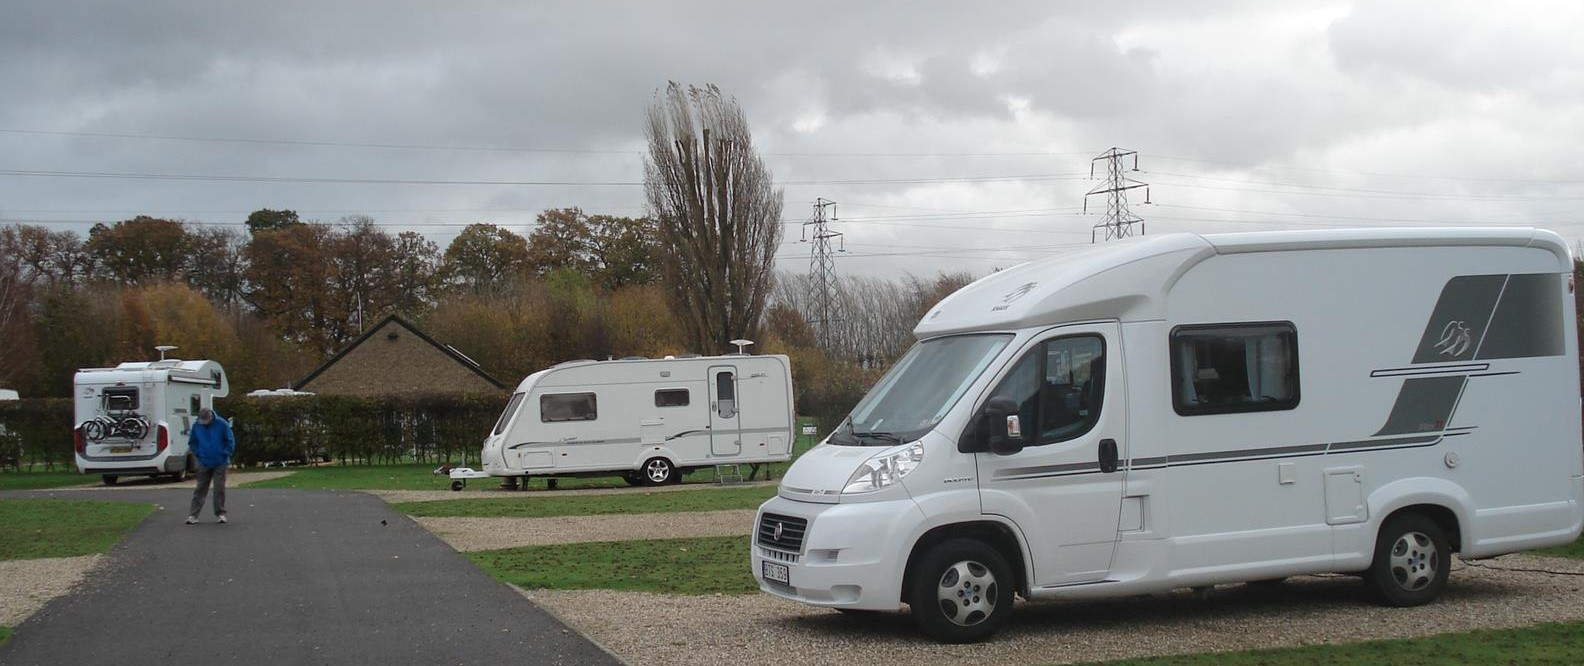 Canterberry camping